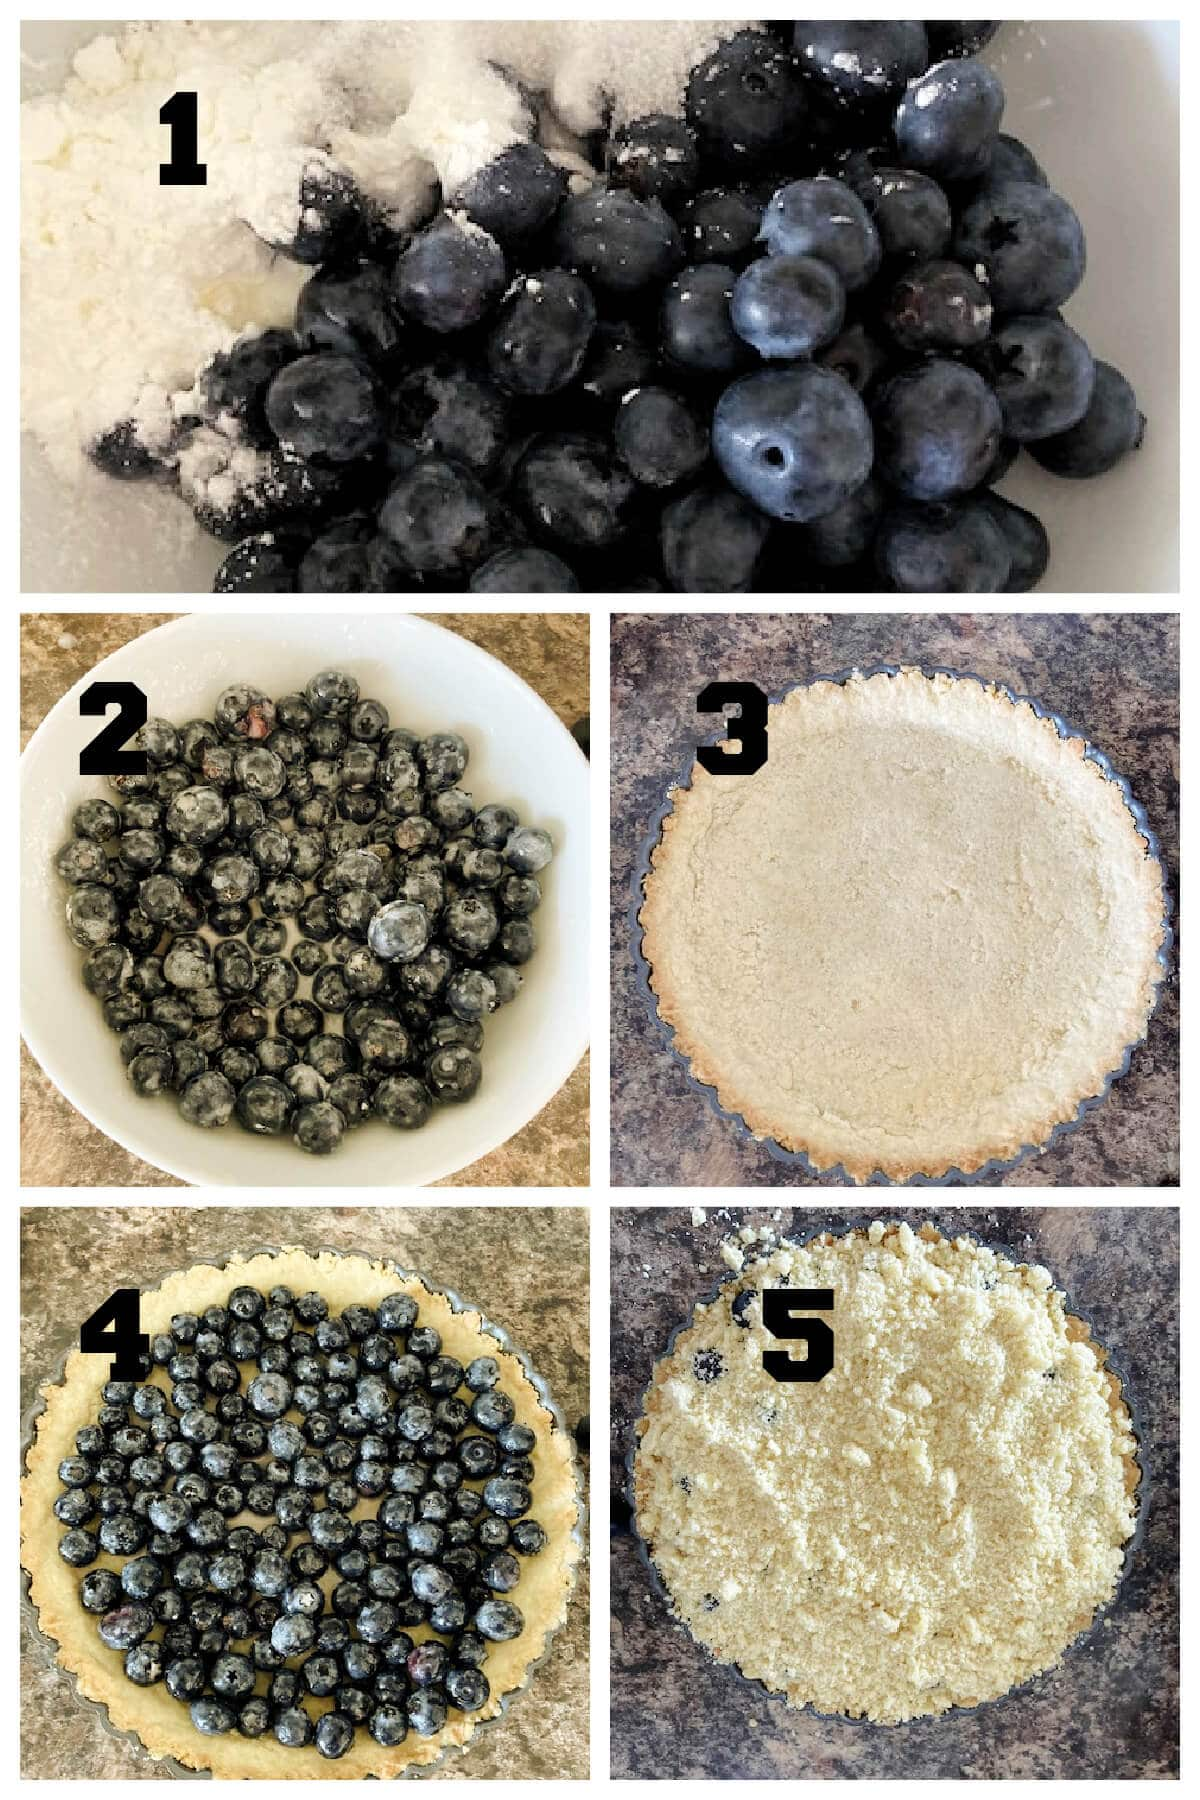 Collage of 5 photos to show how to make blueberry filling for pies